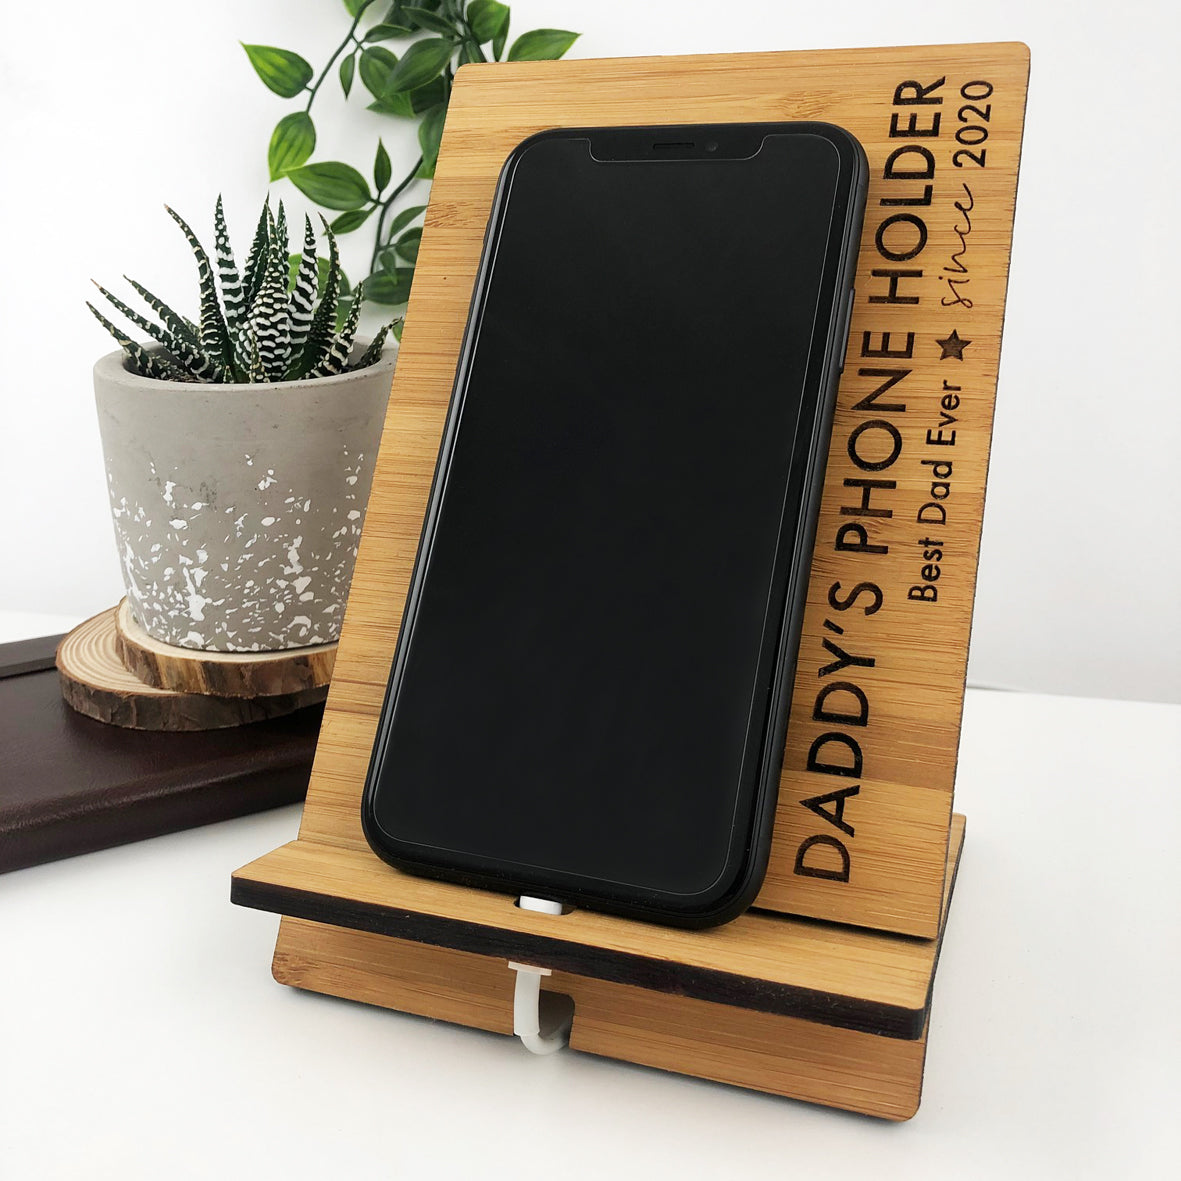 Personalised Bamboo Phone Charger Stand